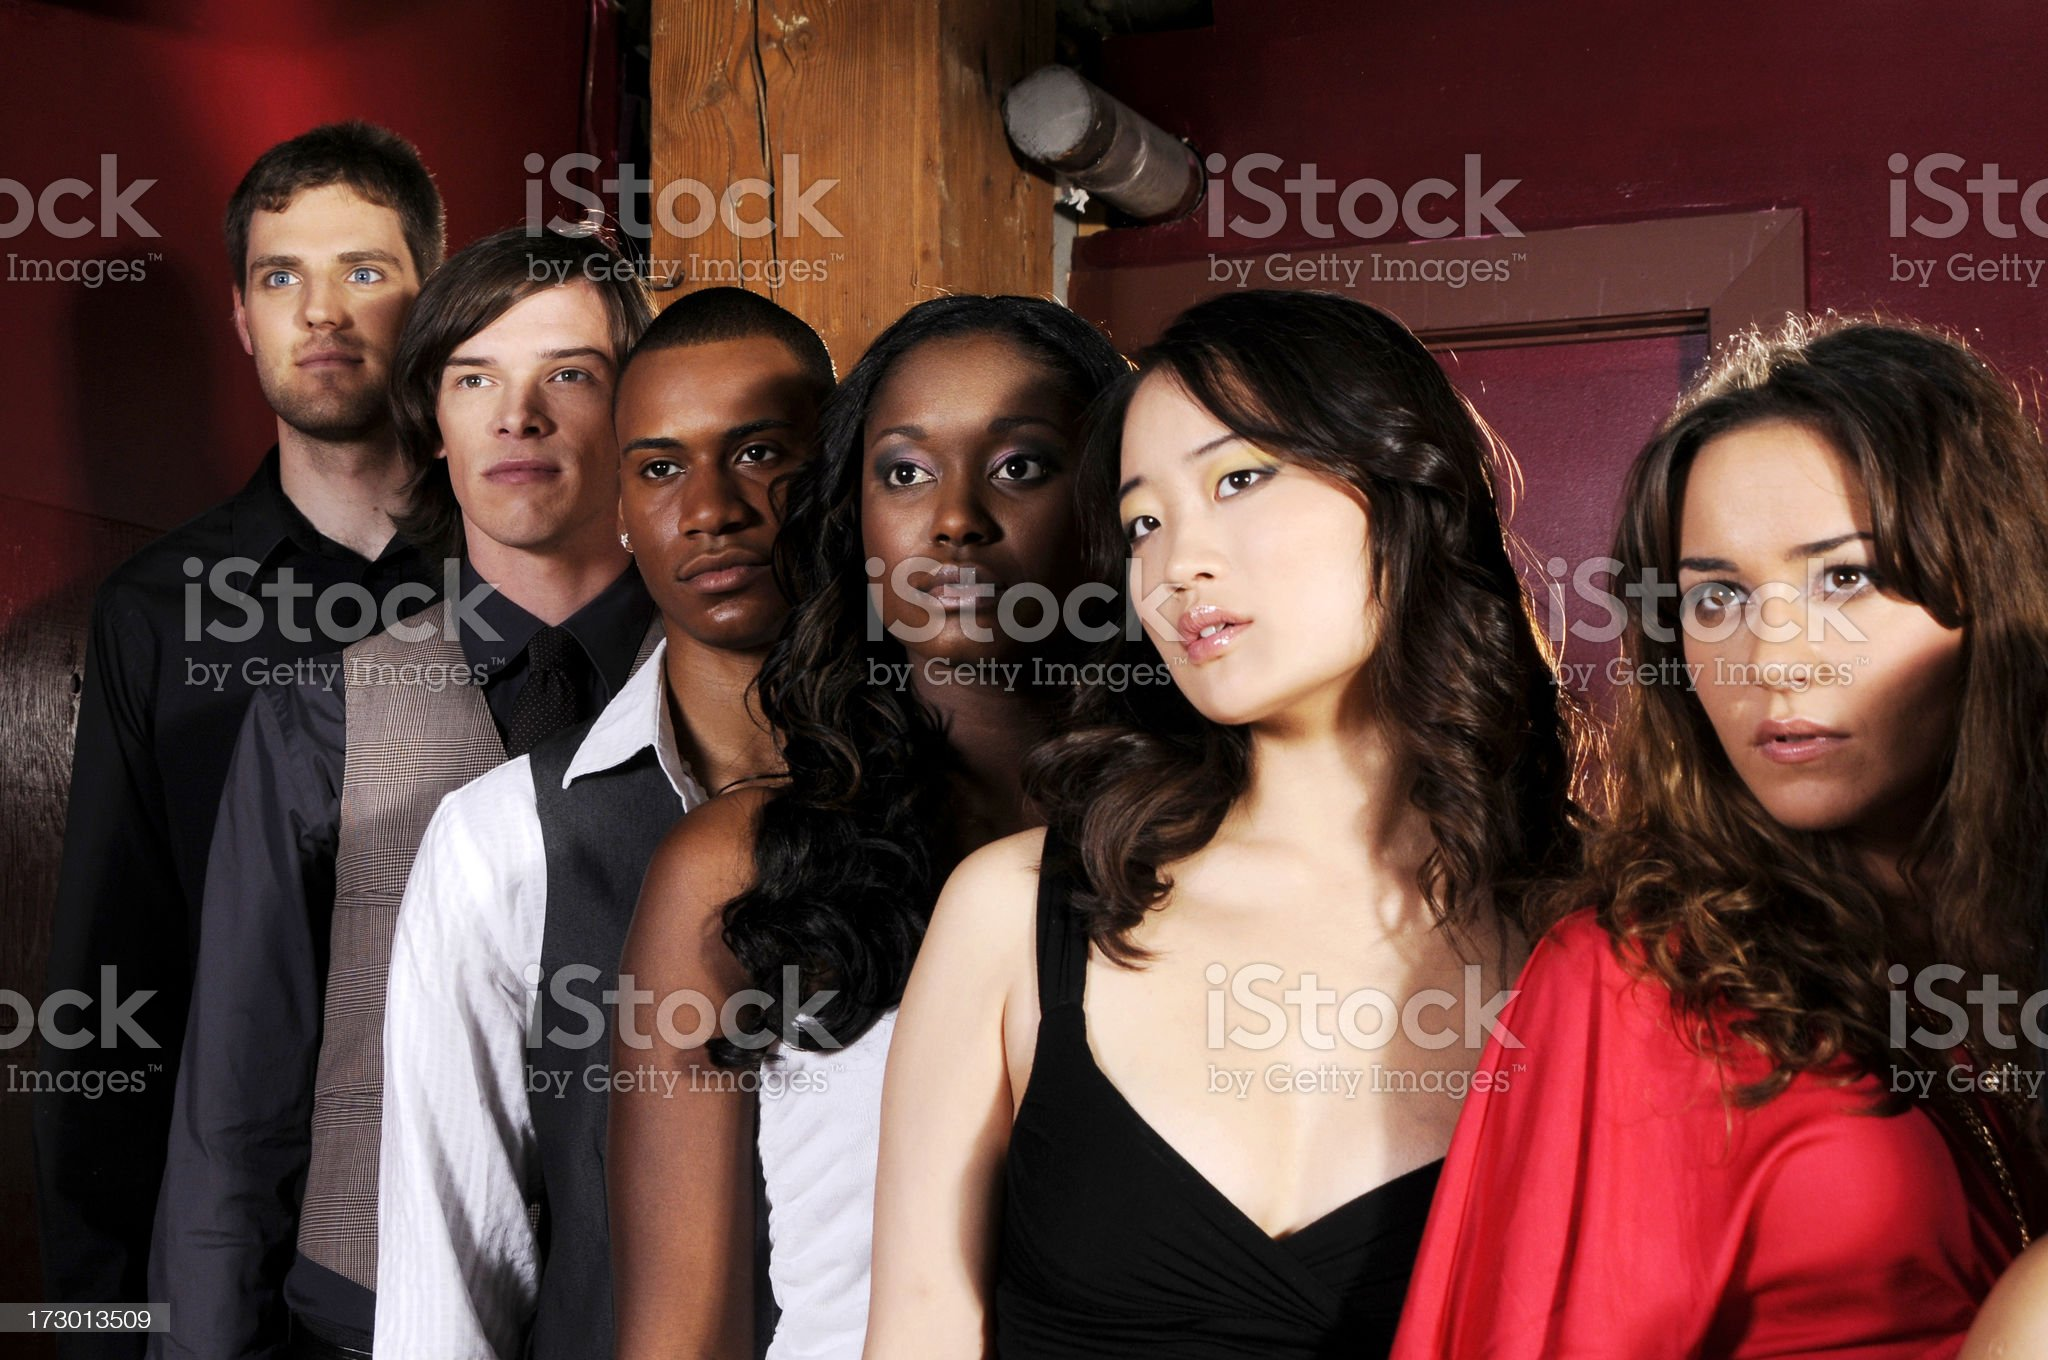 Serious Young People royalty-free stock photo